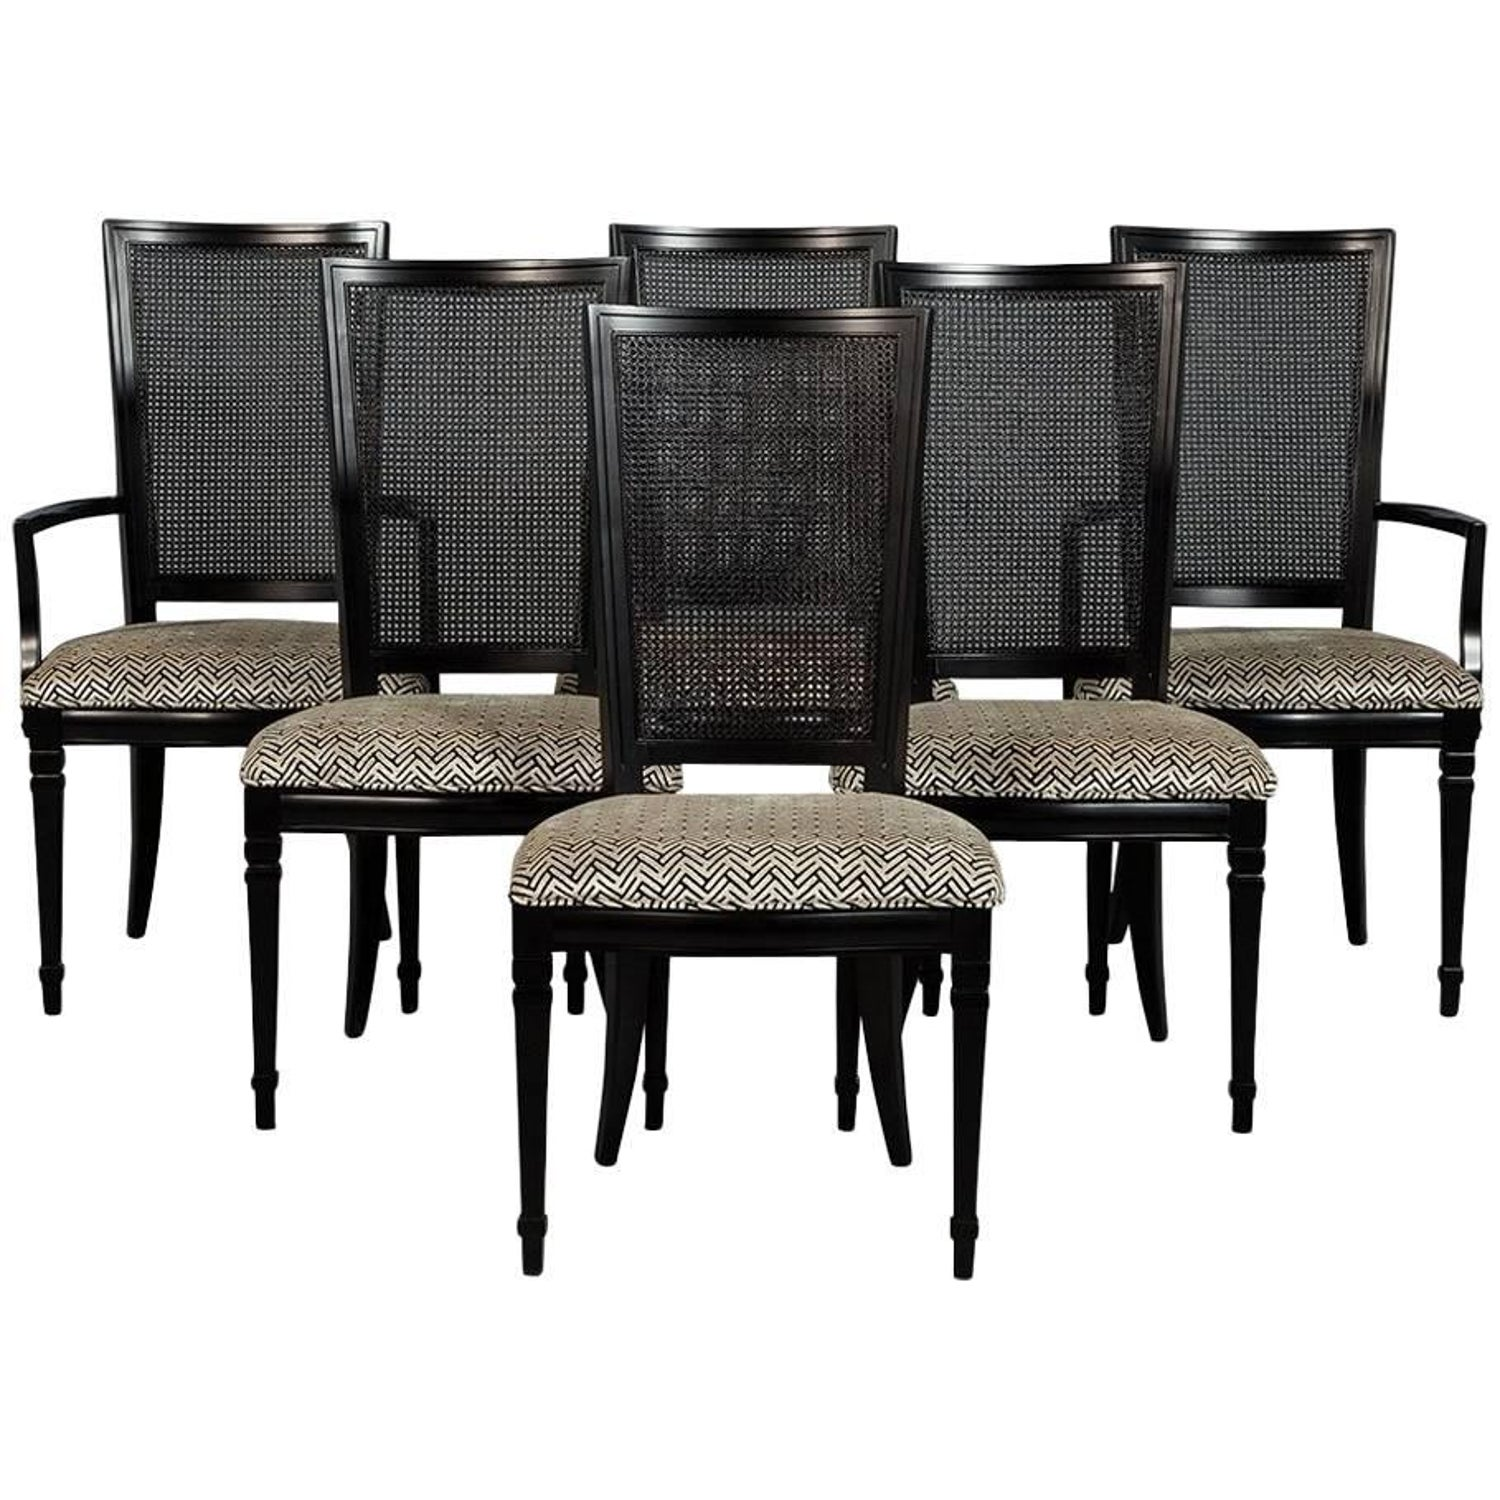 Cane Back Dining Chairs 185 For Sale on 1stdibs